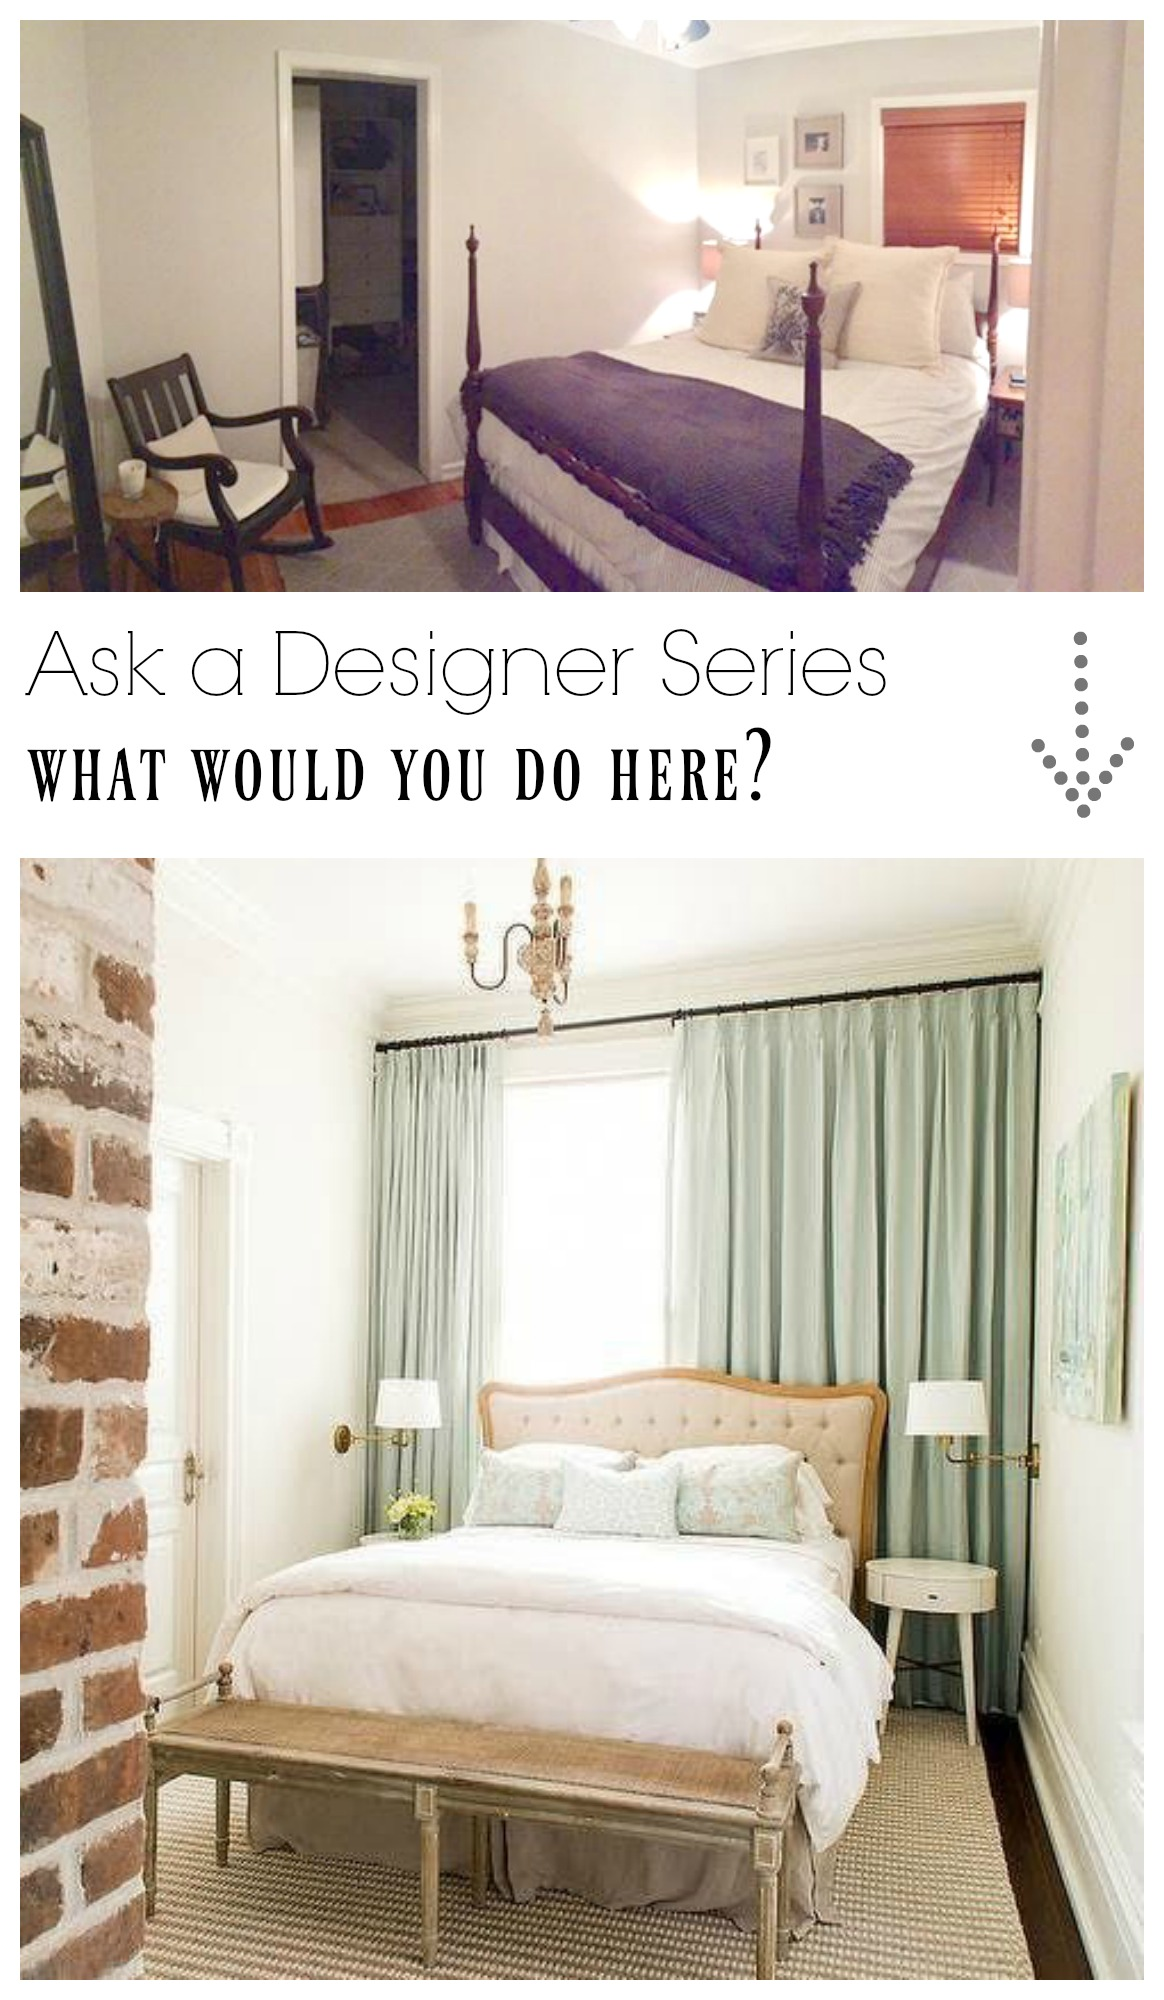 Ask a Designer Series- What would you do with this small bedroom?